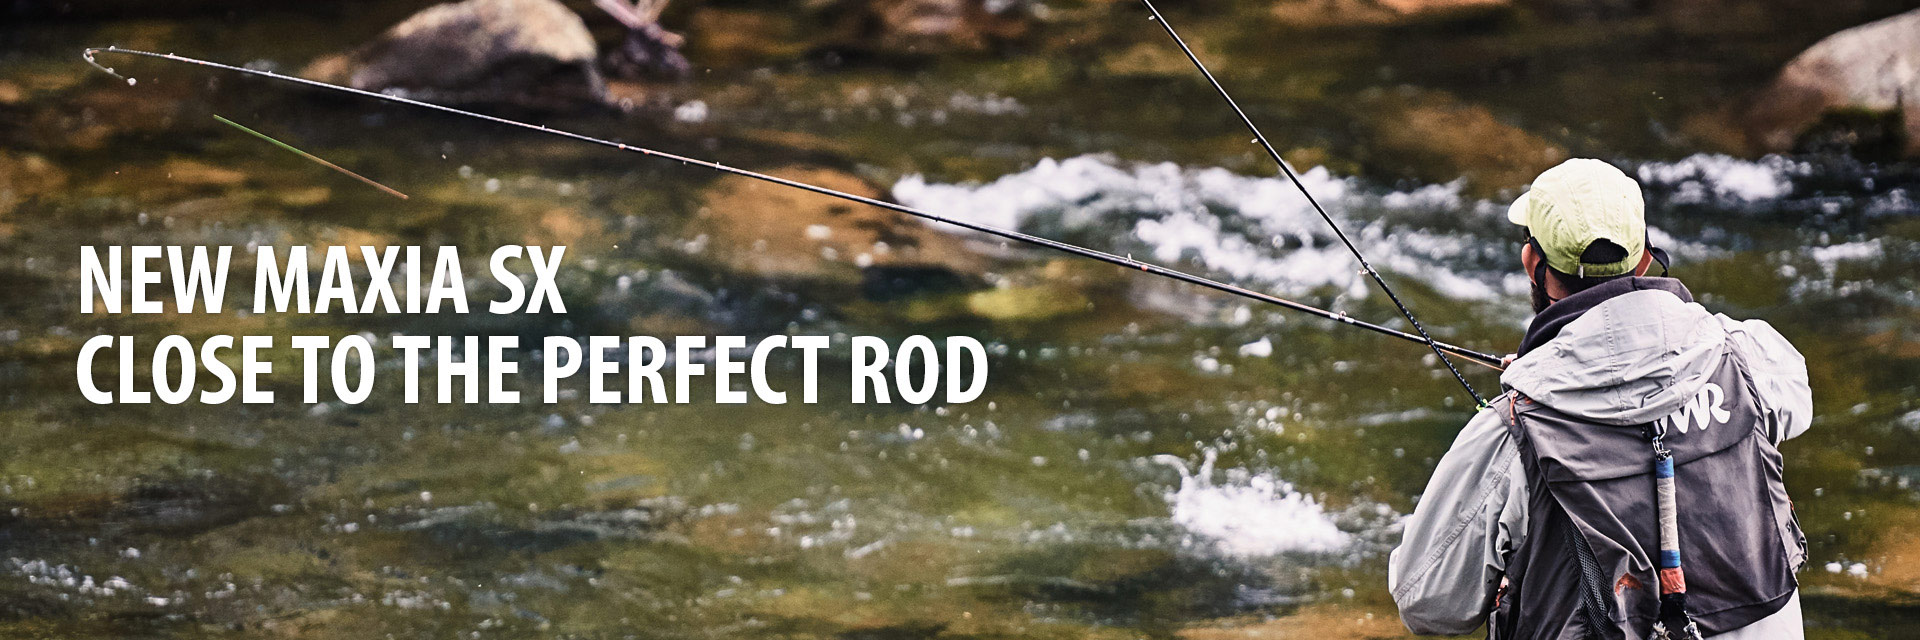 fly-fishing-rods-1